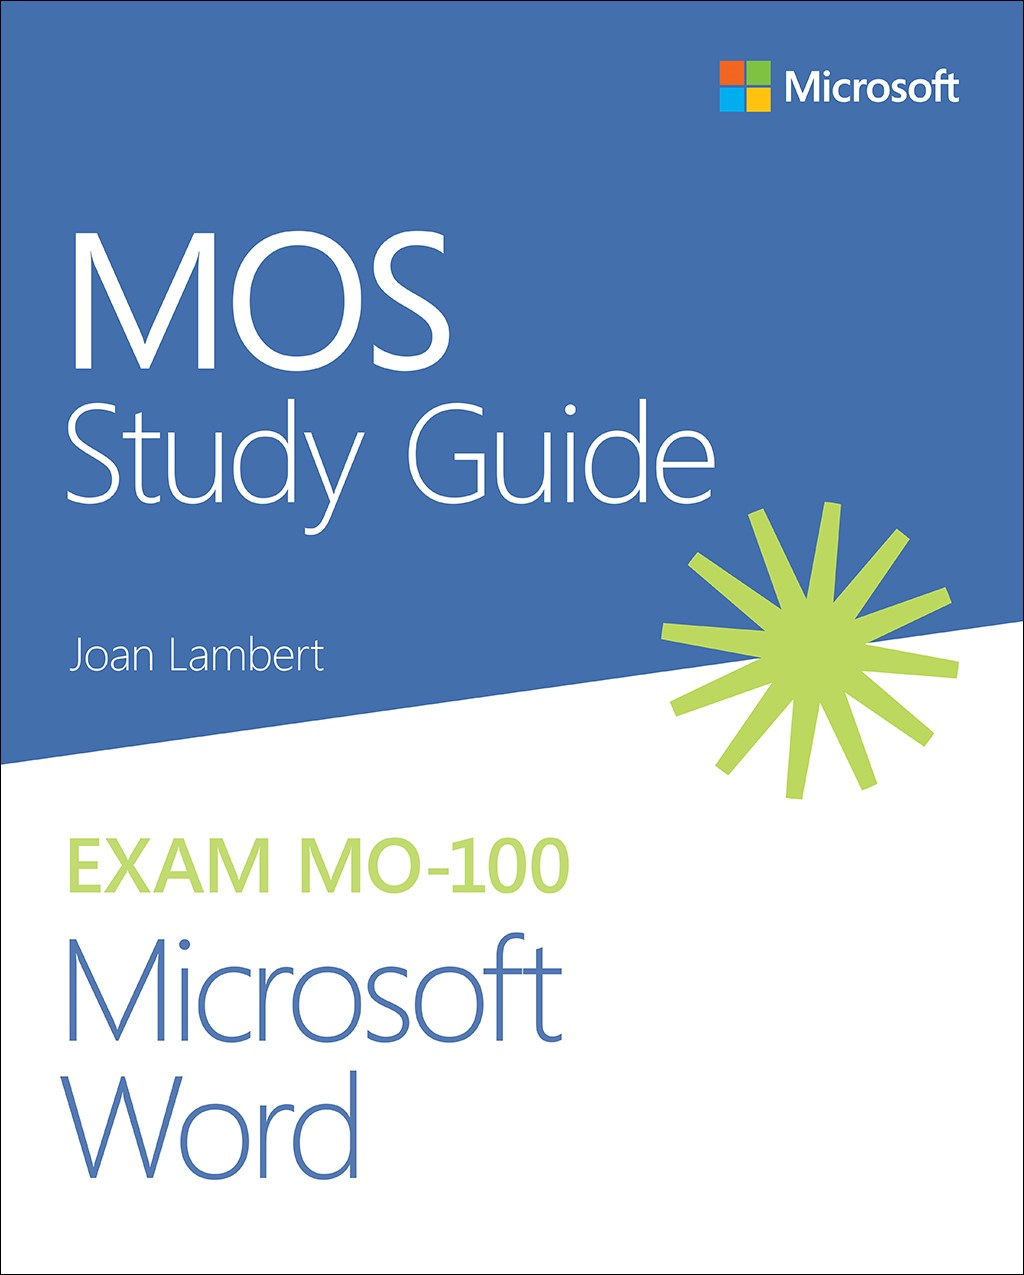 MOS Study Guide for Microsoft Word Exam MO-100